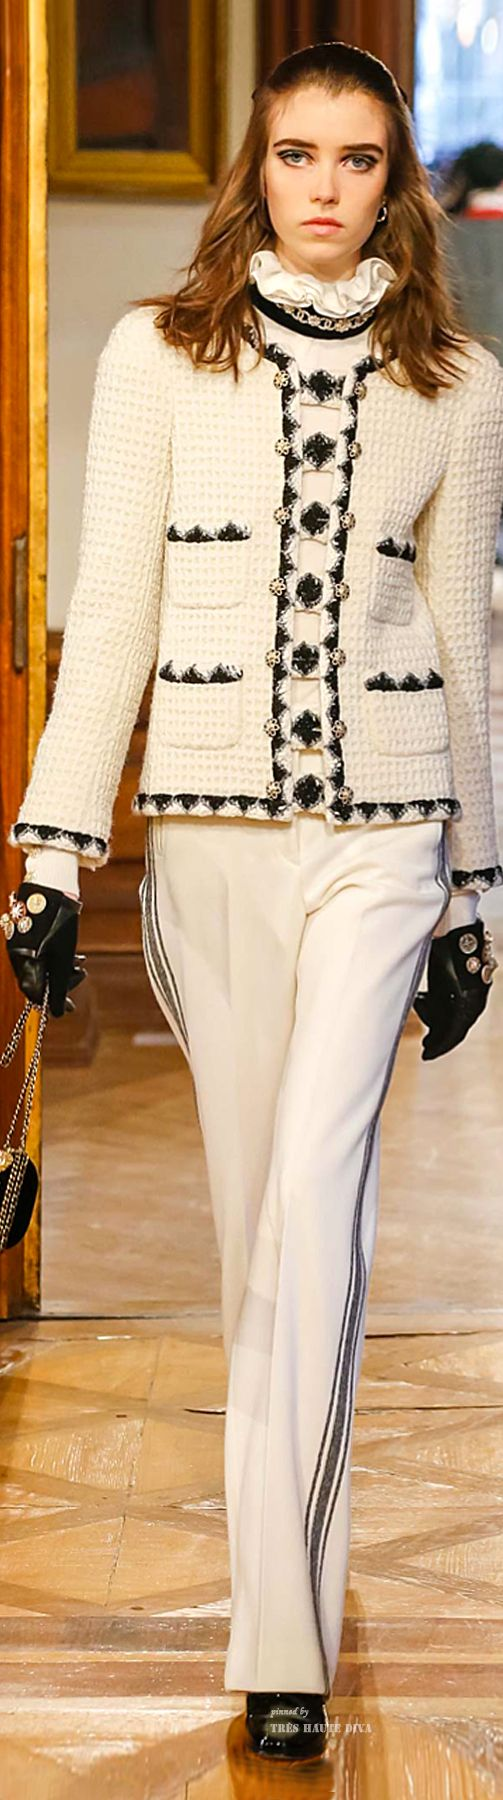 Chanel Pre-Fall 2015 in Salzburg austrian CC: Tracht, Habsburg, Sisi, etc ..wonderful! Chanel in beautiful Austria!